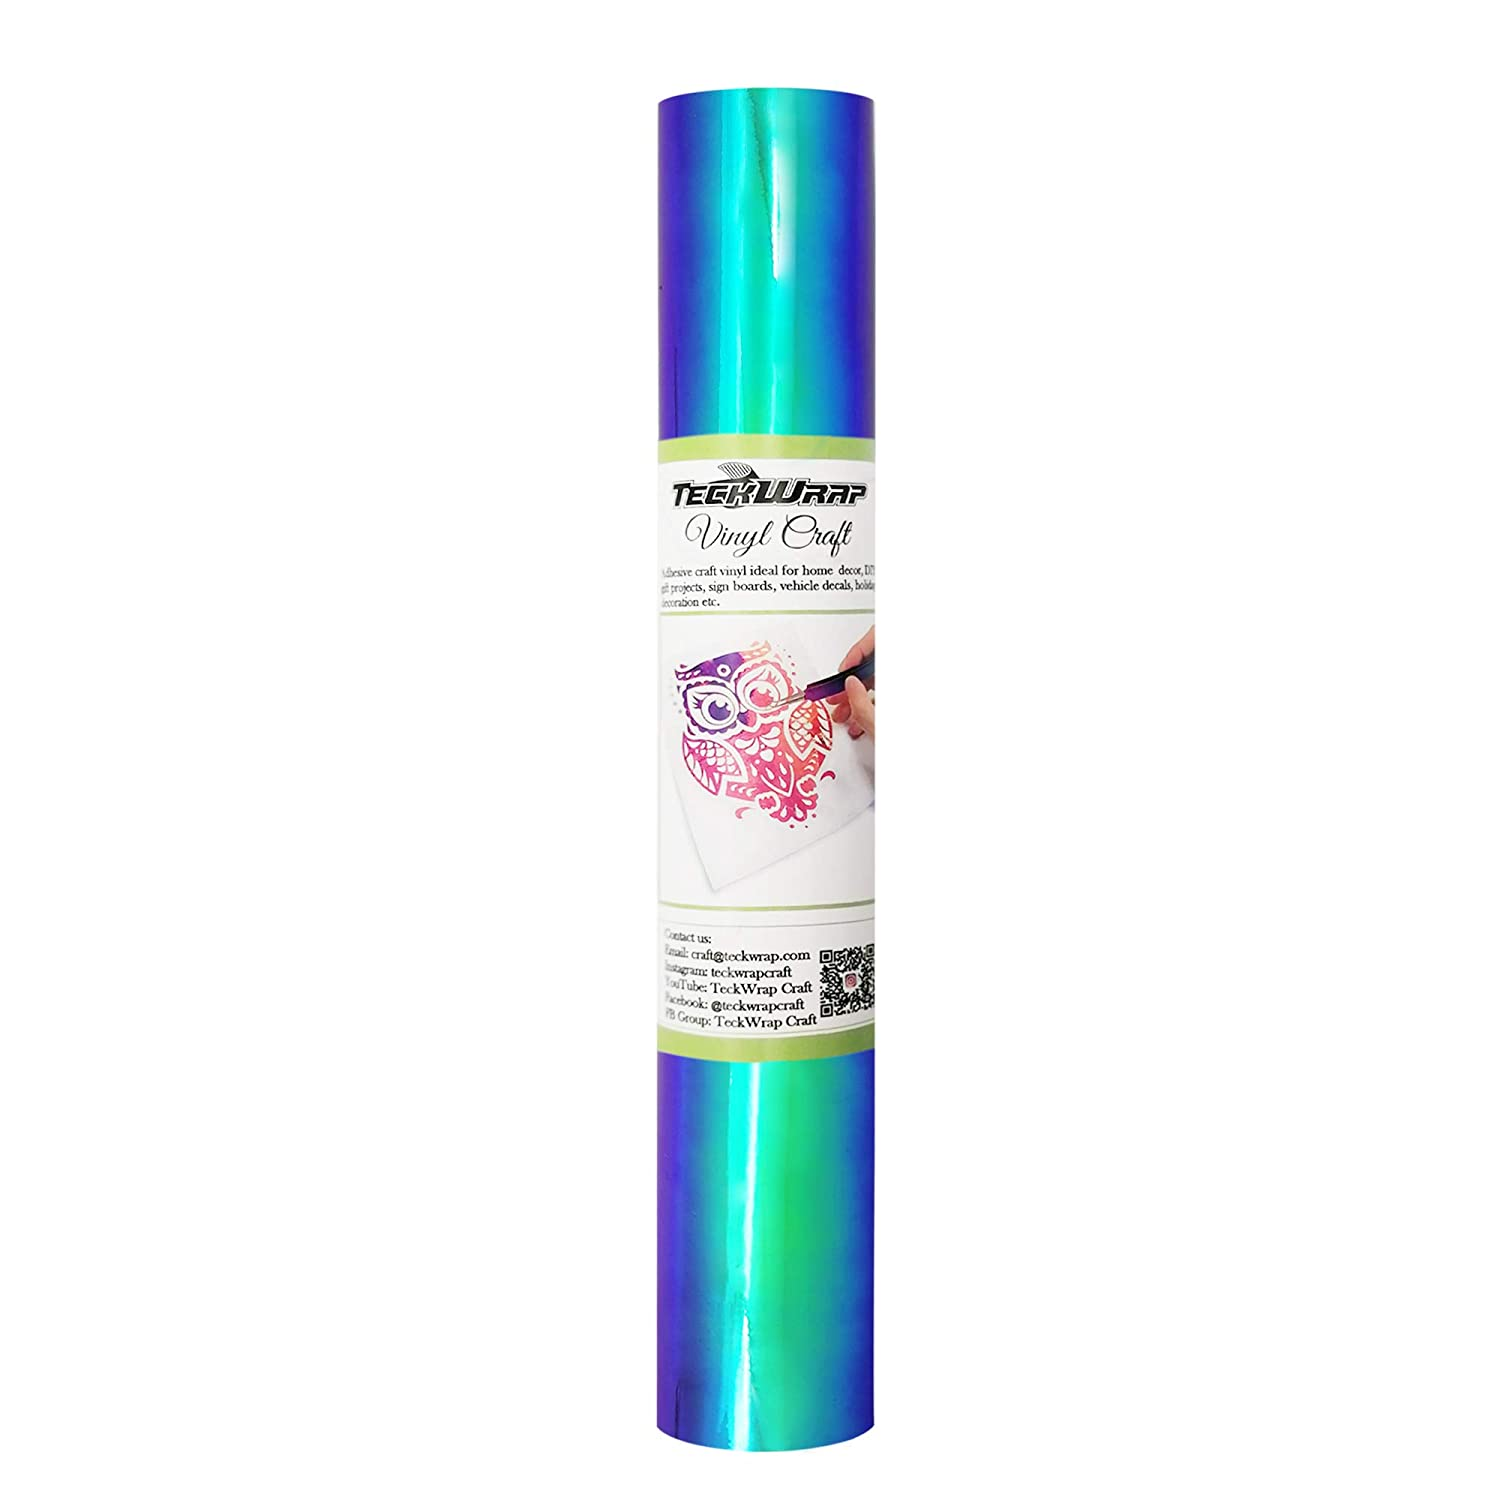 Opal Craft Adhesive Vinyl 1ft x 5ft, Peacock Blue TECKWRAP